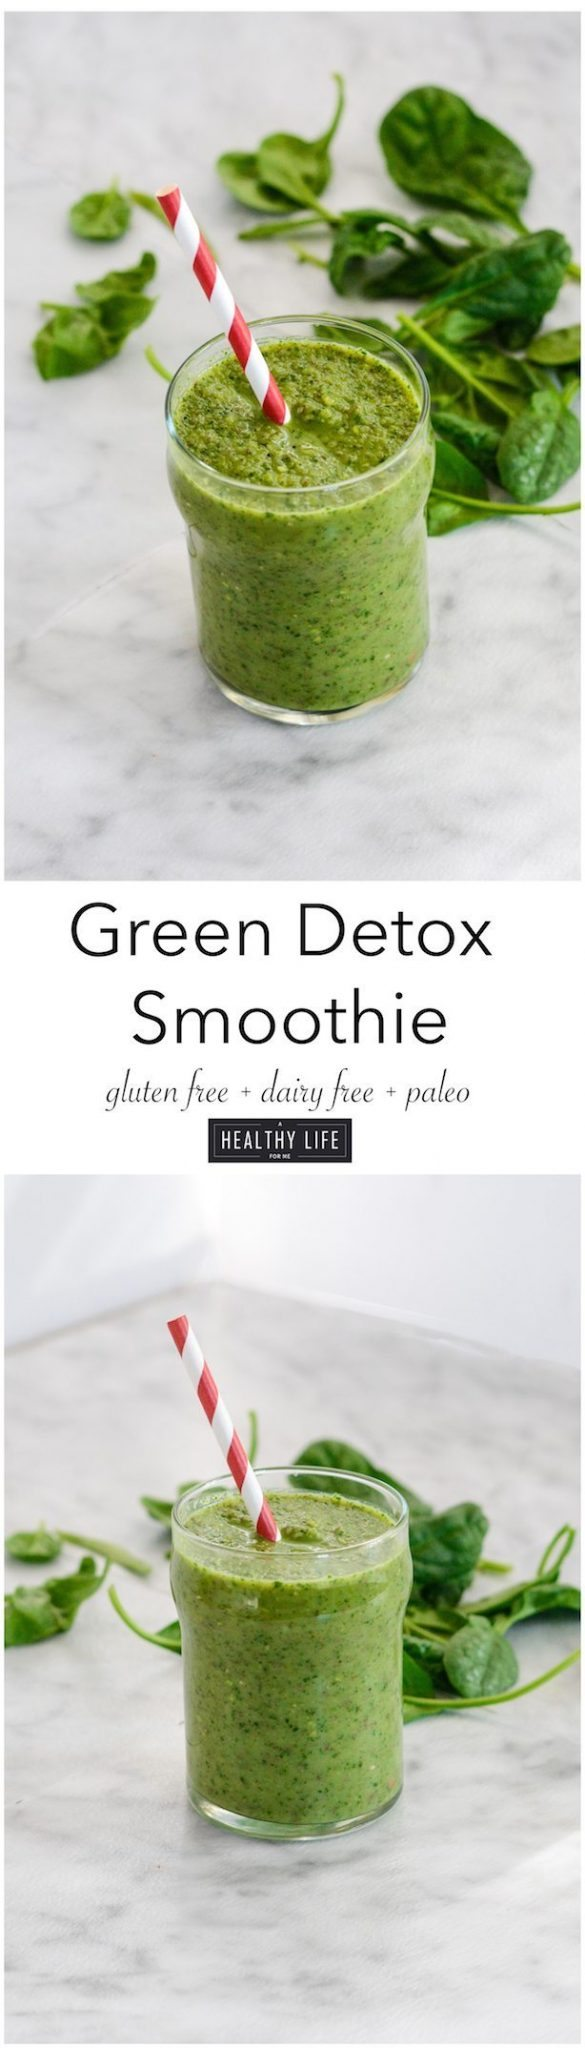 Green Detox Smoothie Recipe Gluten Free Dairy Free Paleo Friendly | ahealthylifeforme.com